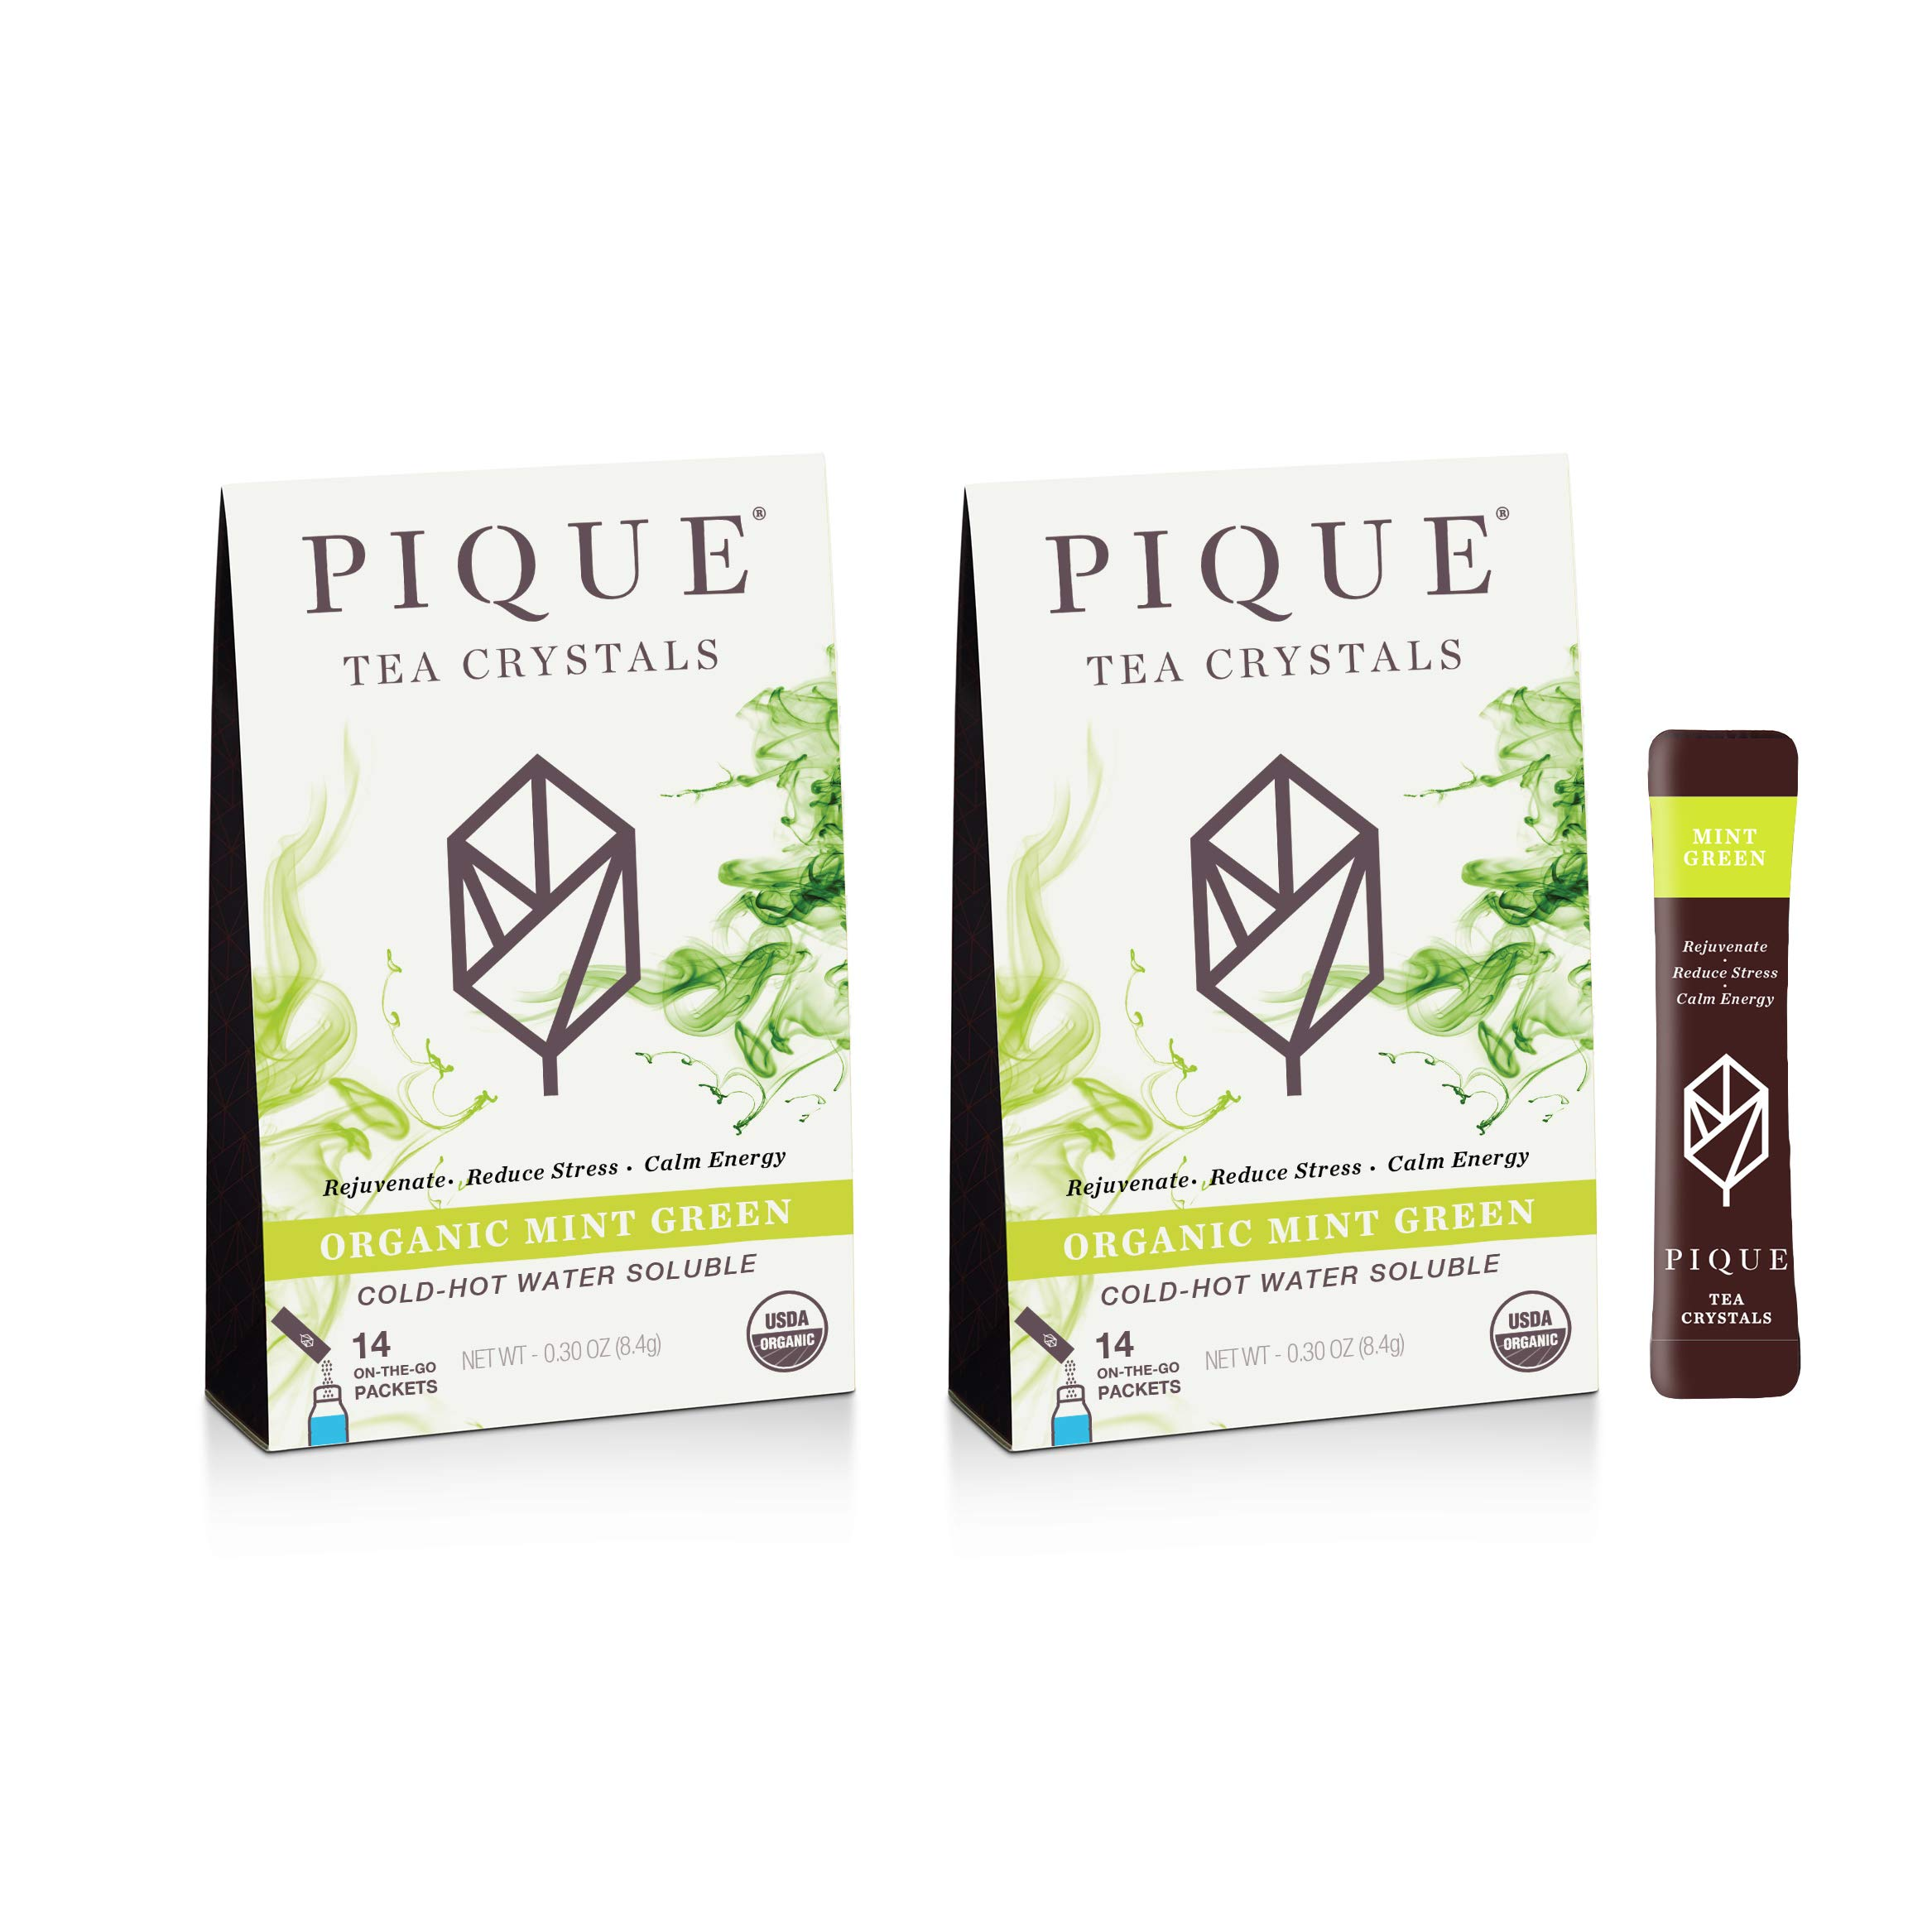 Pique Organic Mint Green Tea Crystals, Antioxidants, Energy, Gut Health, 28 Single Serve Sticks (Pack of 2)